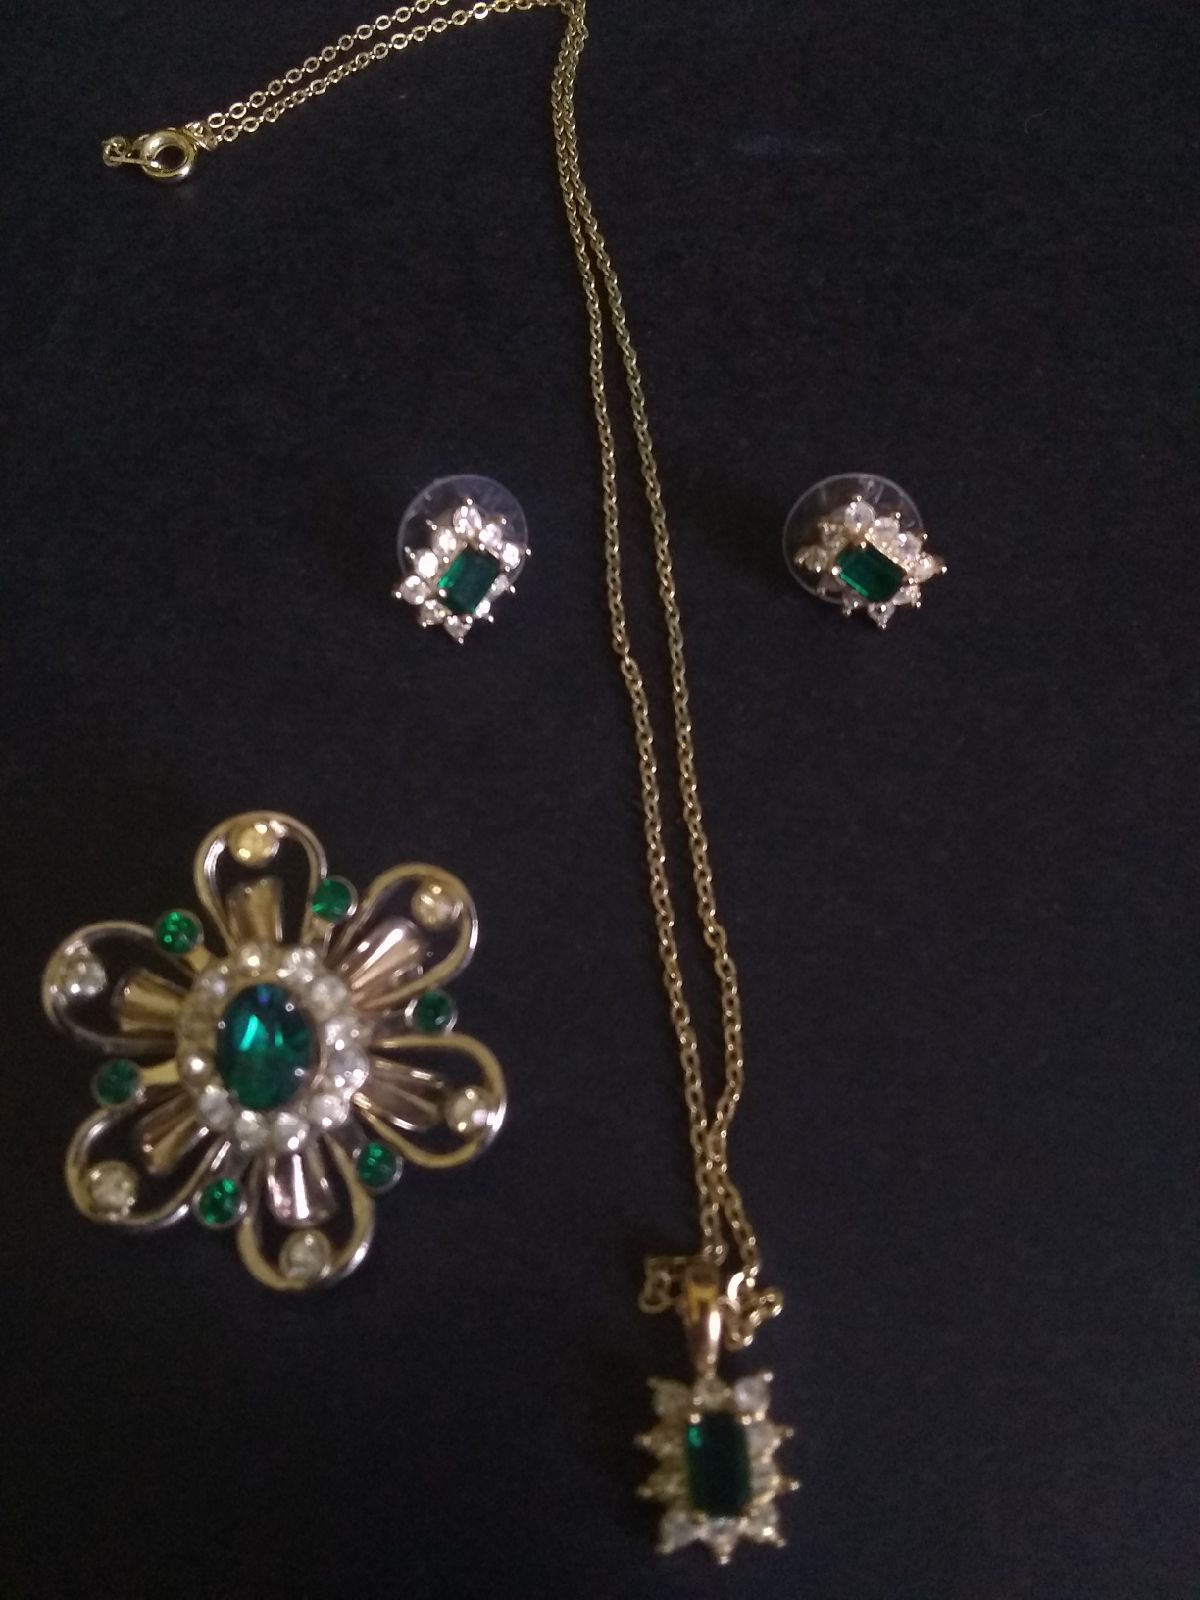 Necklace,earrings,and vintage Coro pin.